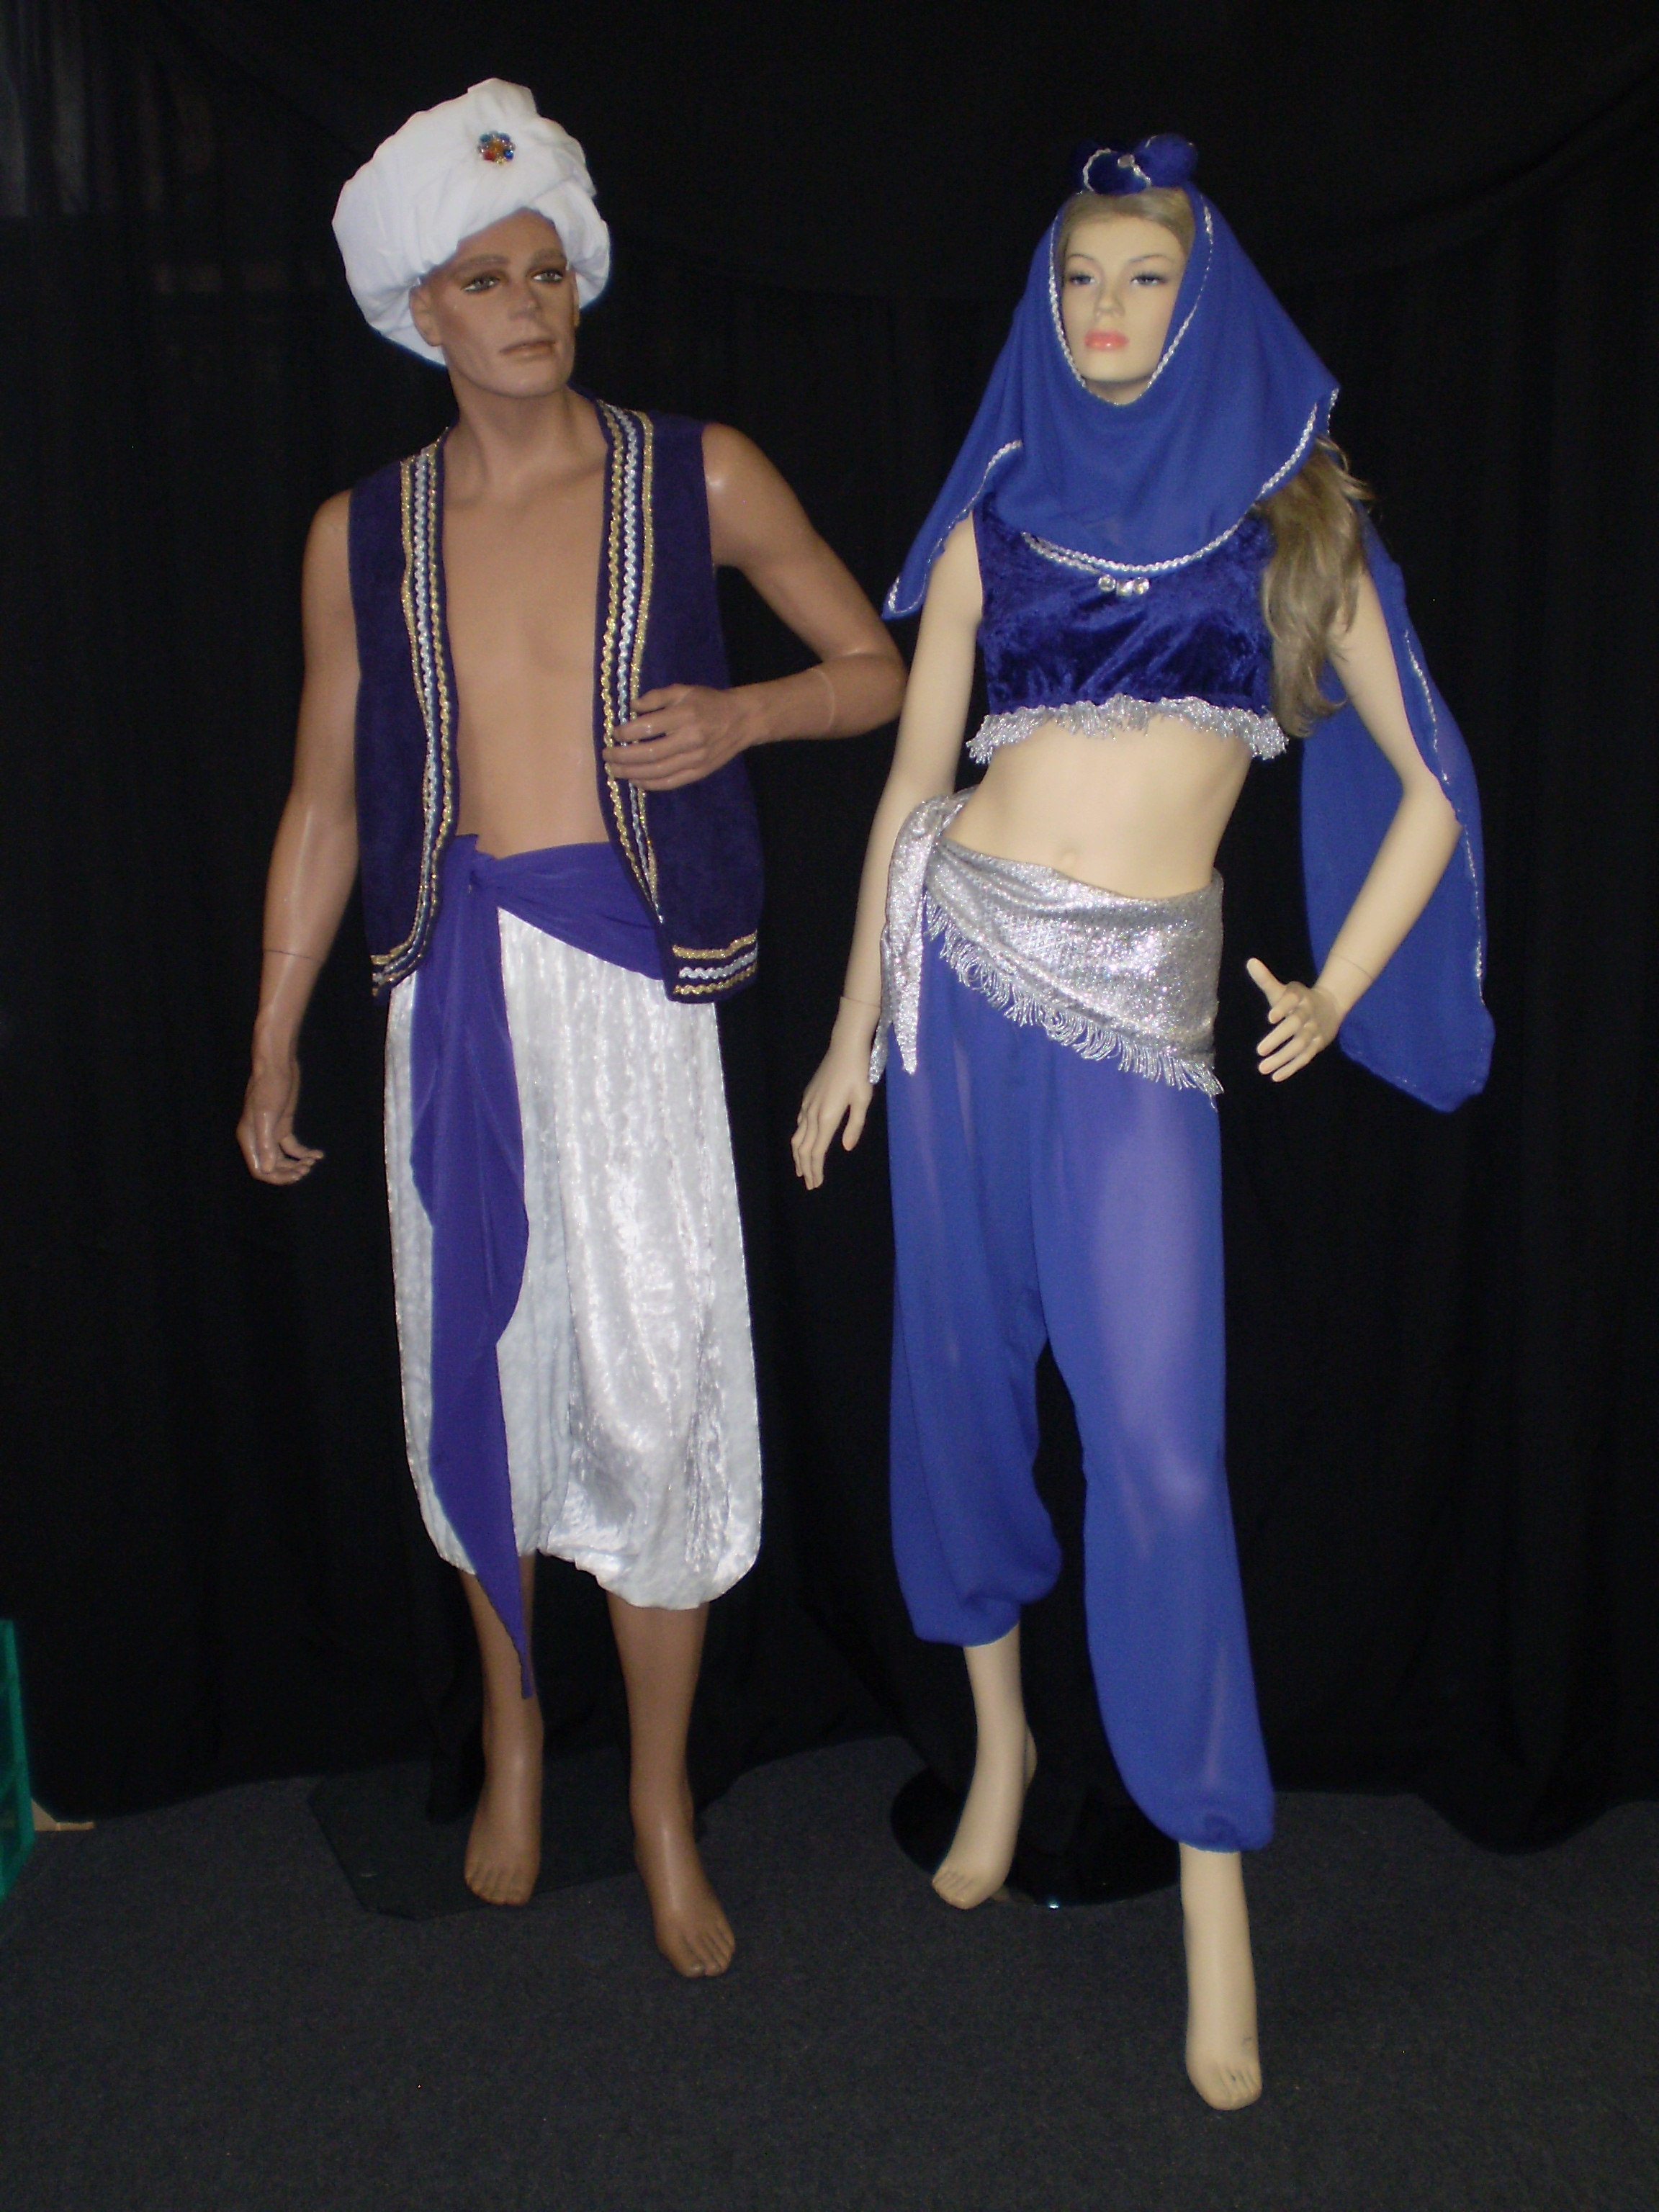 Arabian nights costumes from harem girls to sheikhs alternatively if you to prefer to buy your arabian nights costume click here solutioingenieria Images